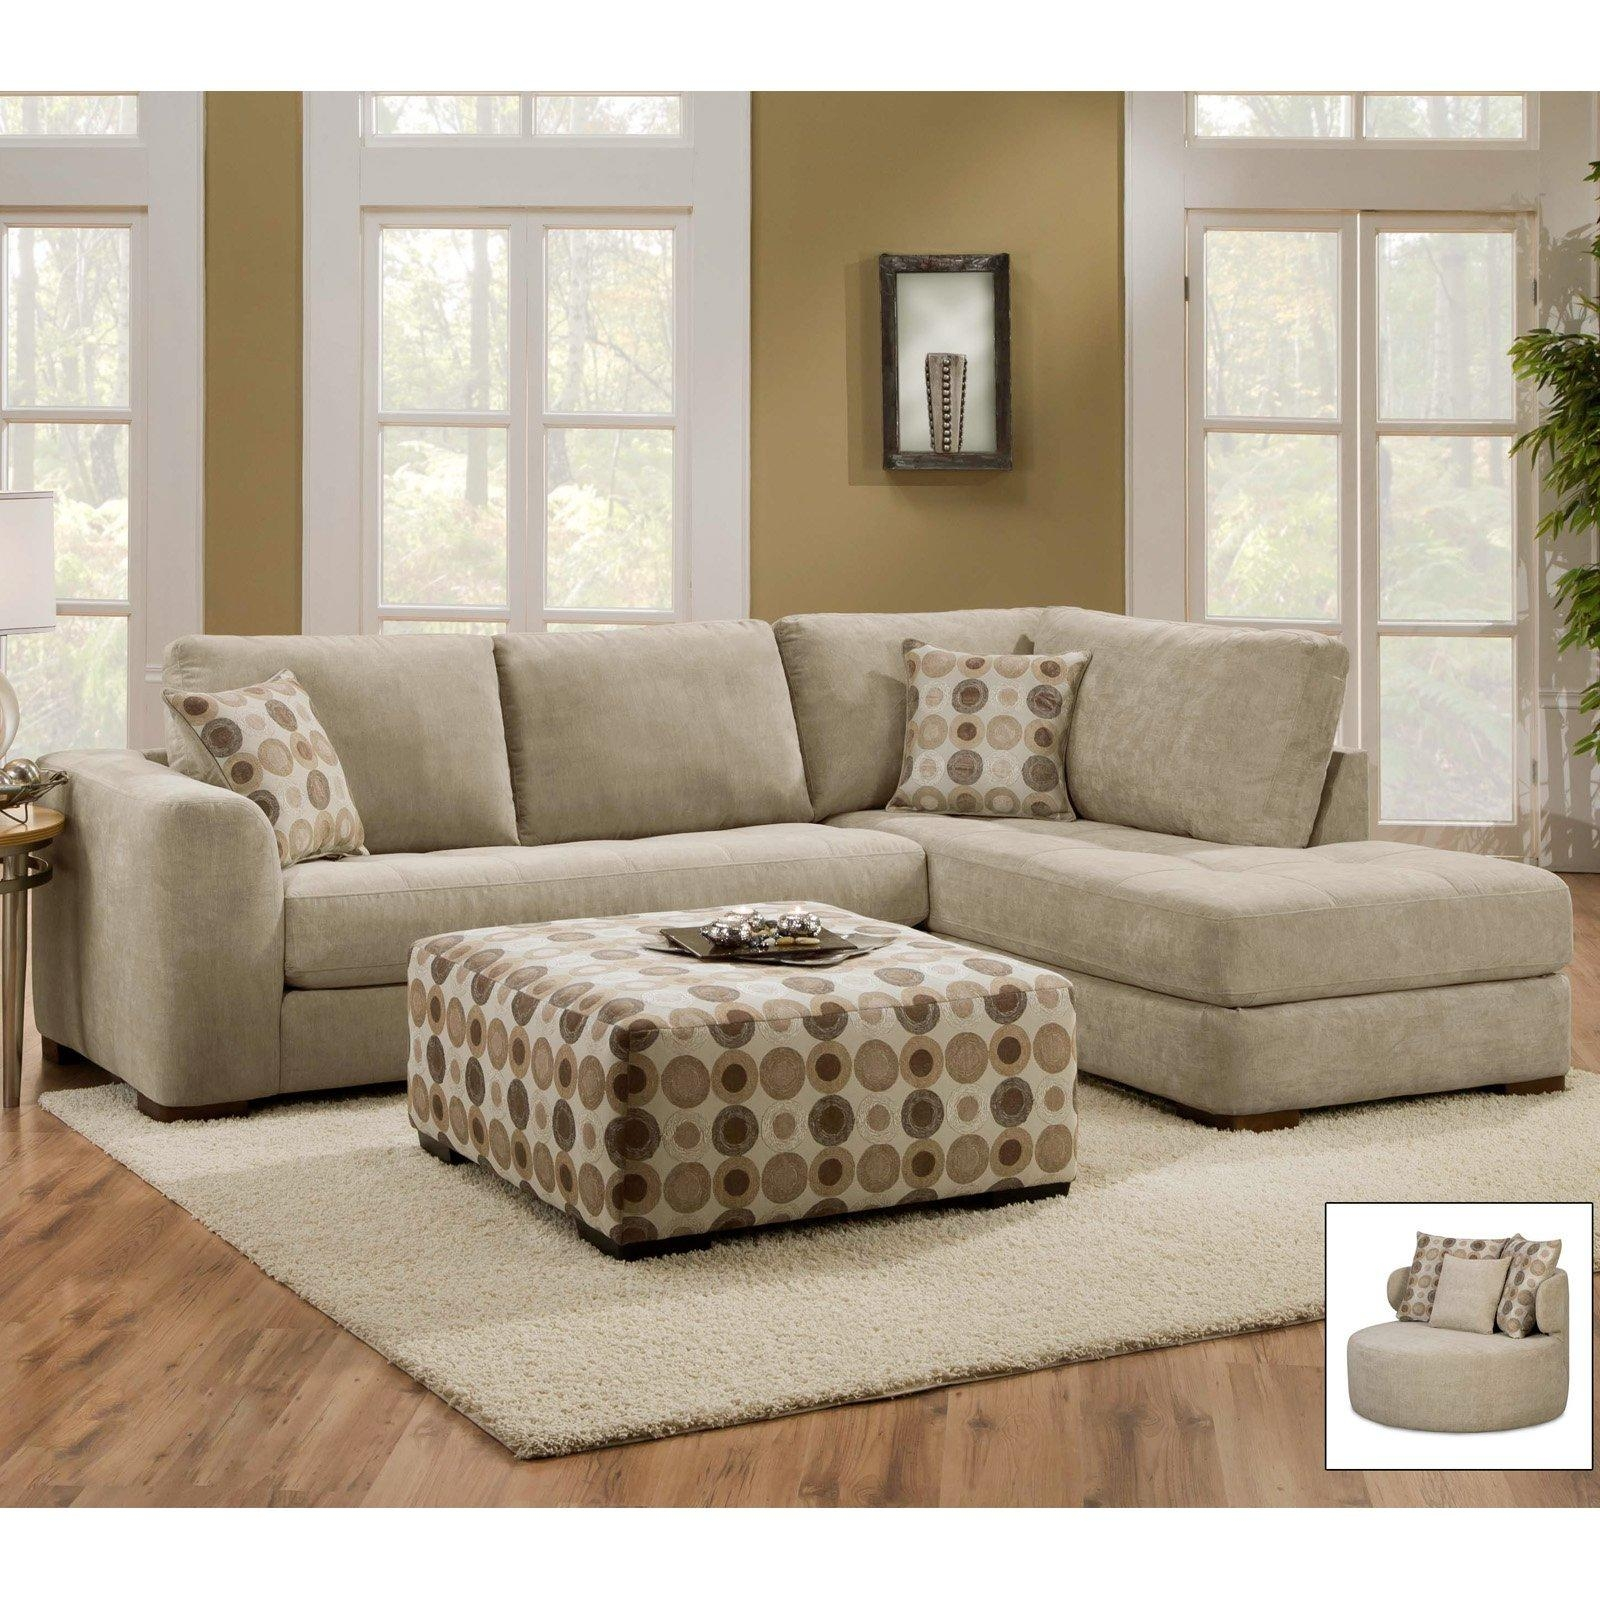 Amazing 2 Piece Sectional Sofa 80 About Remodel Sofas And Couches Within Small 2 Piece Sectional Sofas (Image 5 of 23)